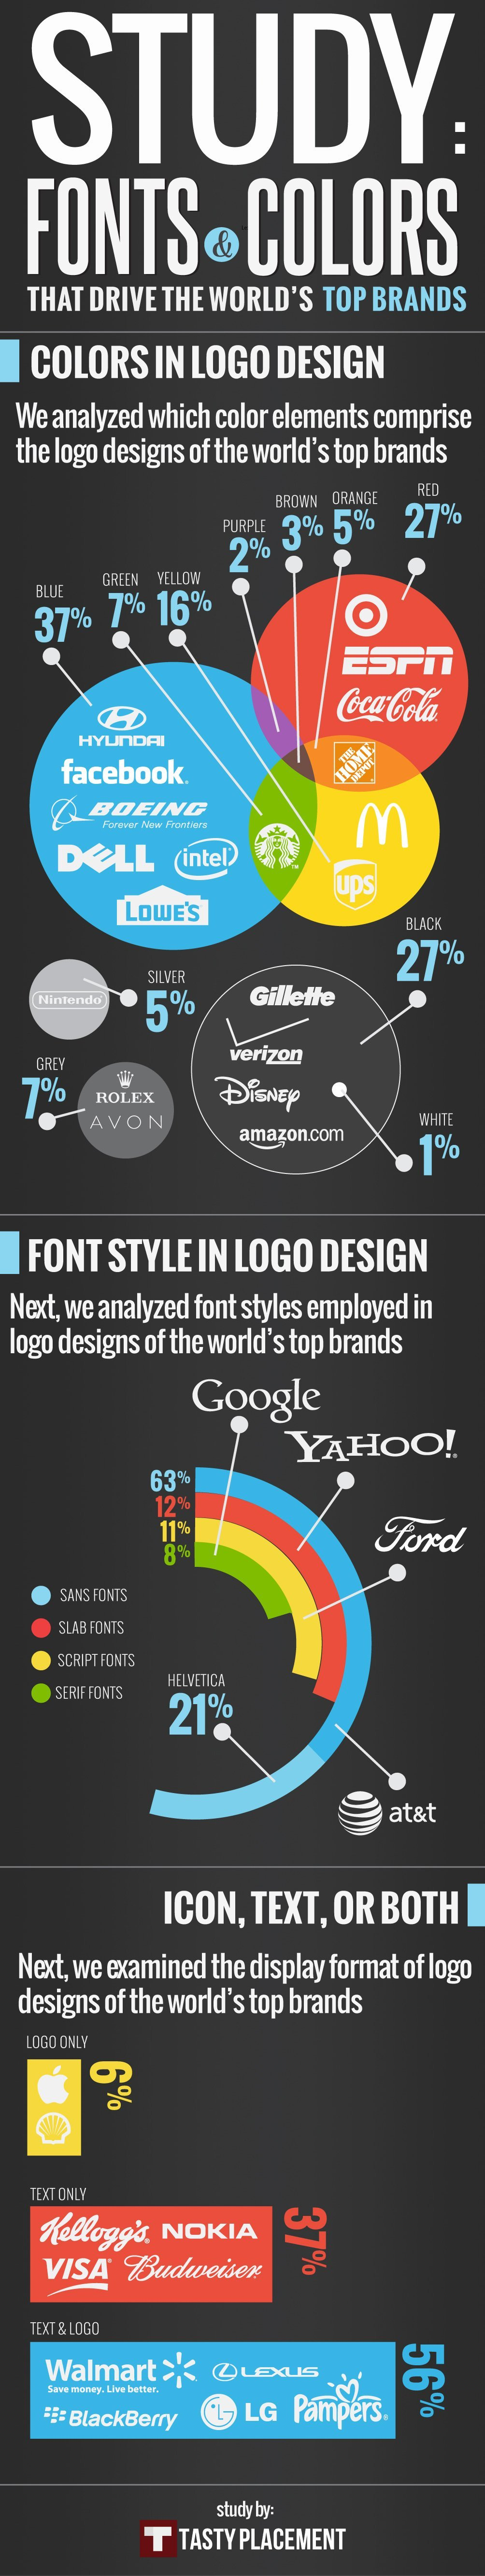 Fonts and Colors in Logos